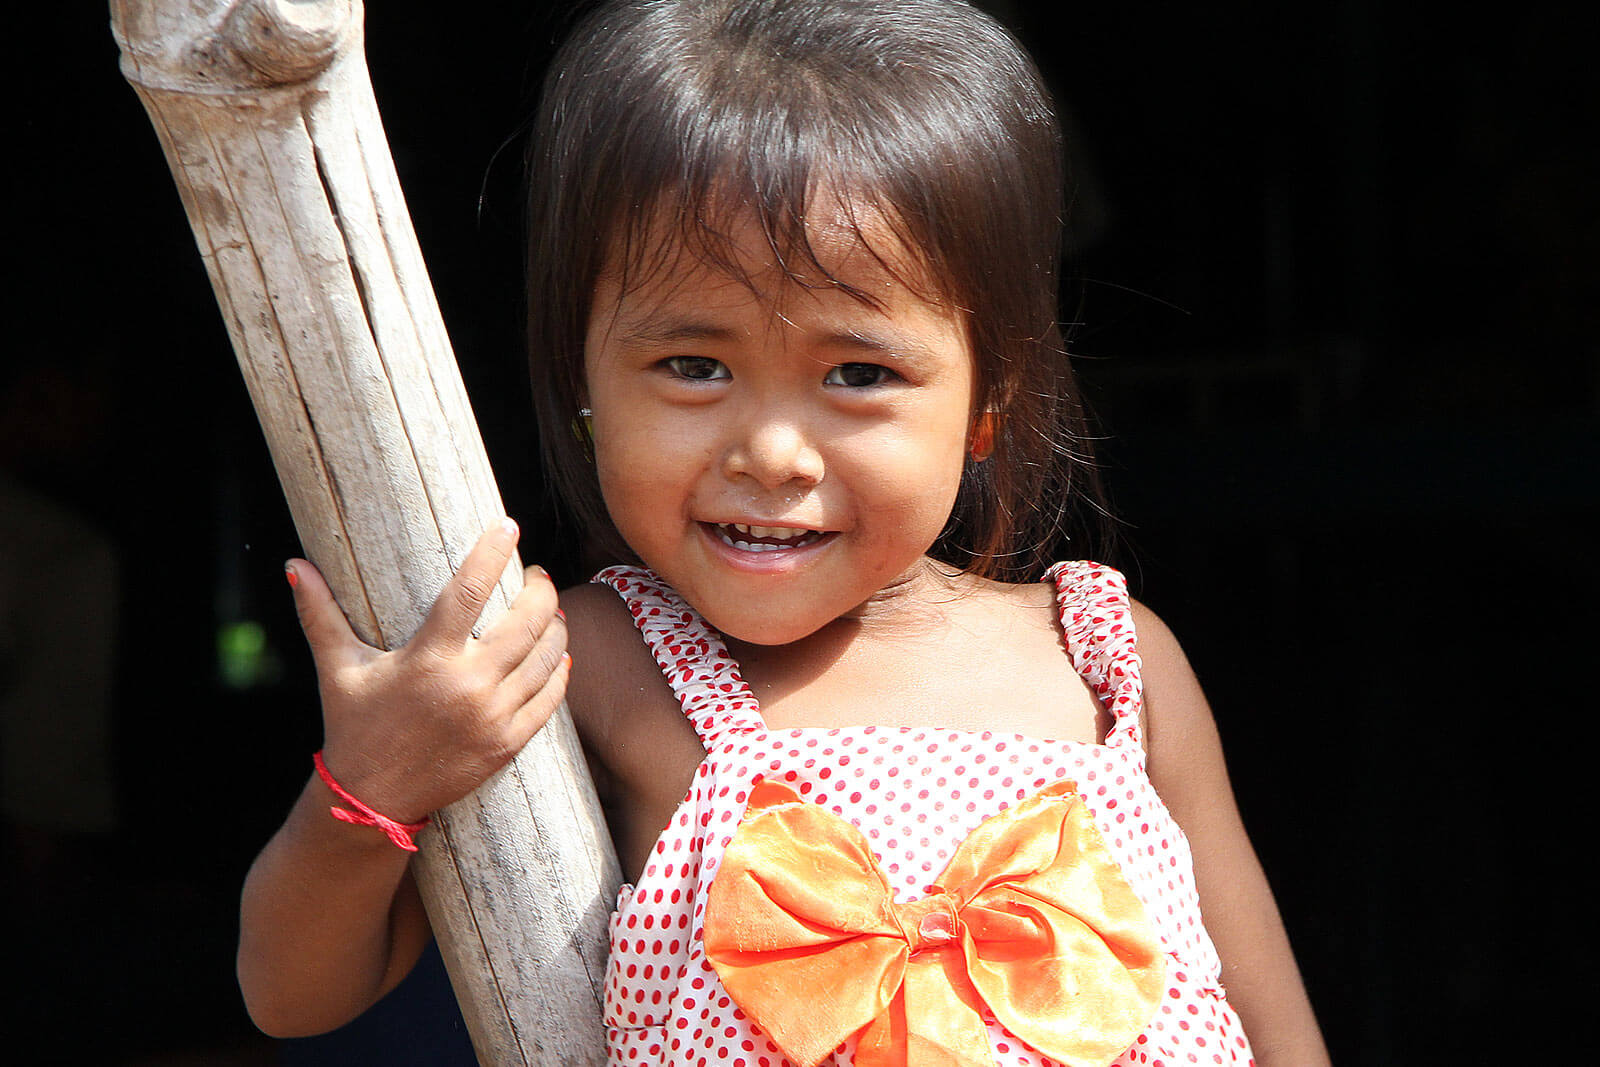 smile-cambodia-child-angkor